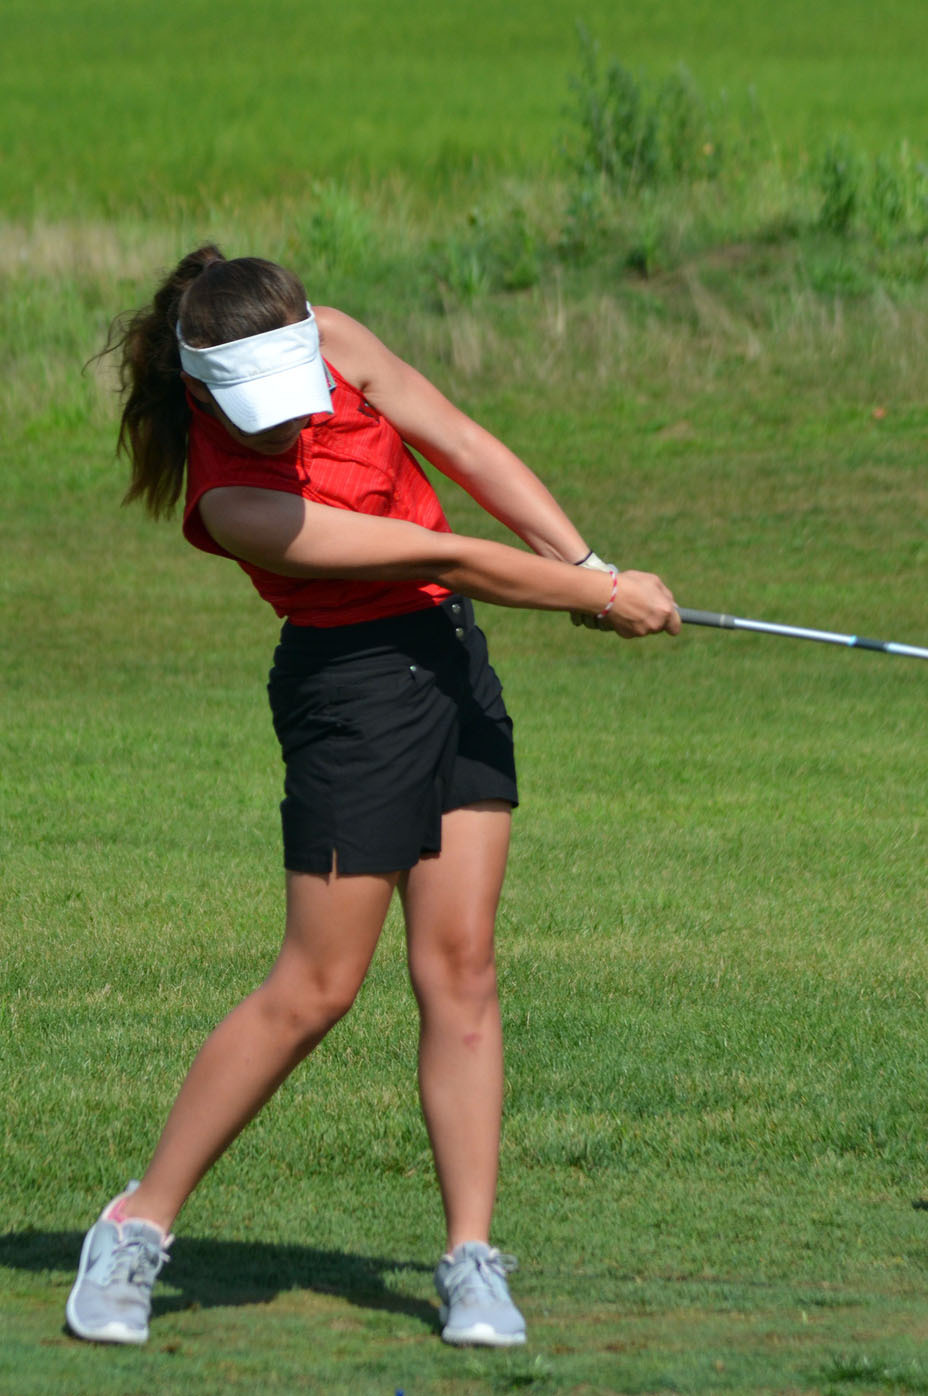 Freshman+Hannah+Matthews+makes+an+impressive+drive+to+begin+the+second+round+of+golfers+on+hole+one.+The+second+round+of+golfers+included+two+SHS+golfers+and+one+Ben+Davis+golfer.